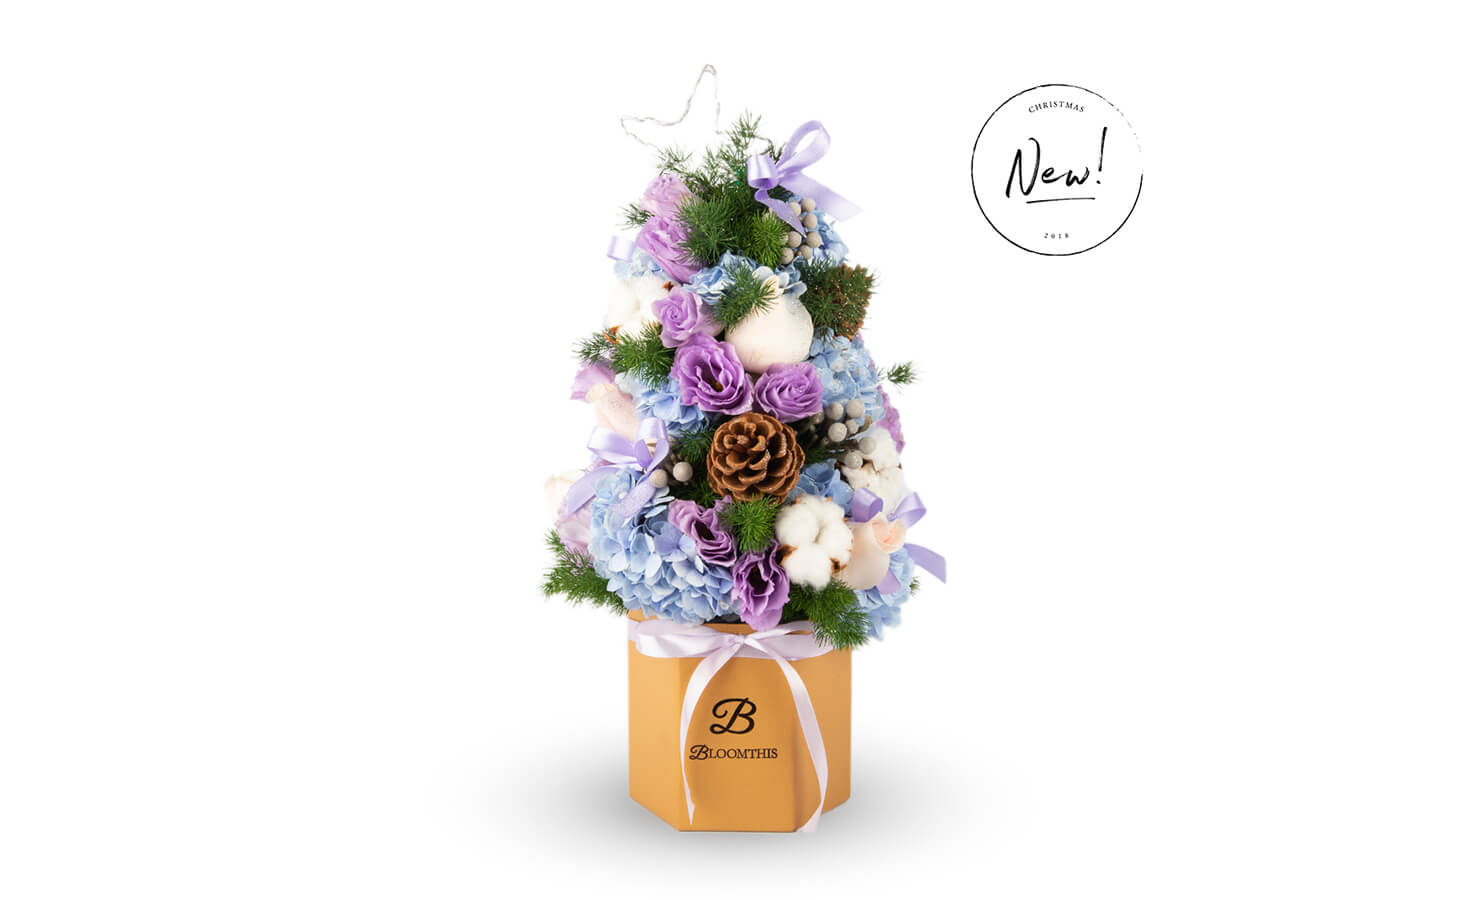 03-the-ultimate-list-of-christmas-gifts-in-malaysia-bloomthis-christmas-flowers-galadriel